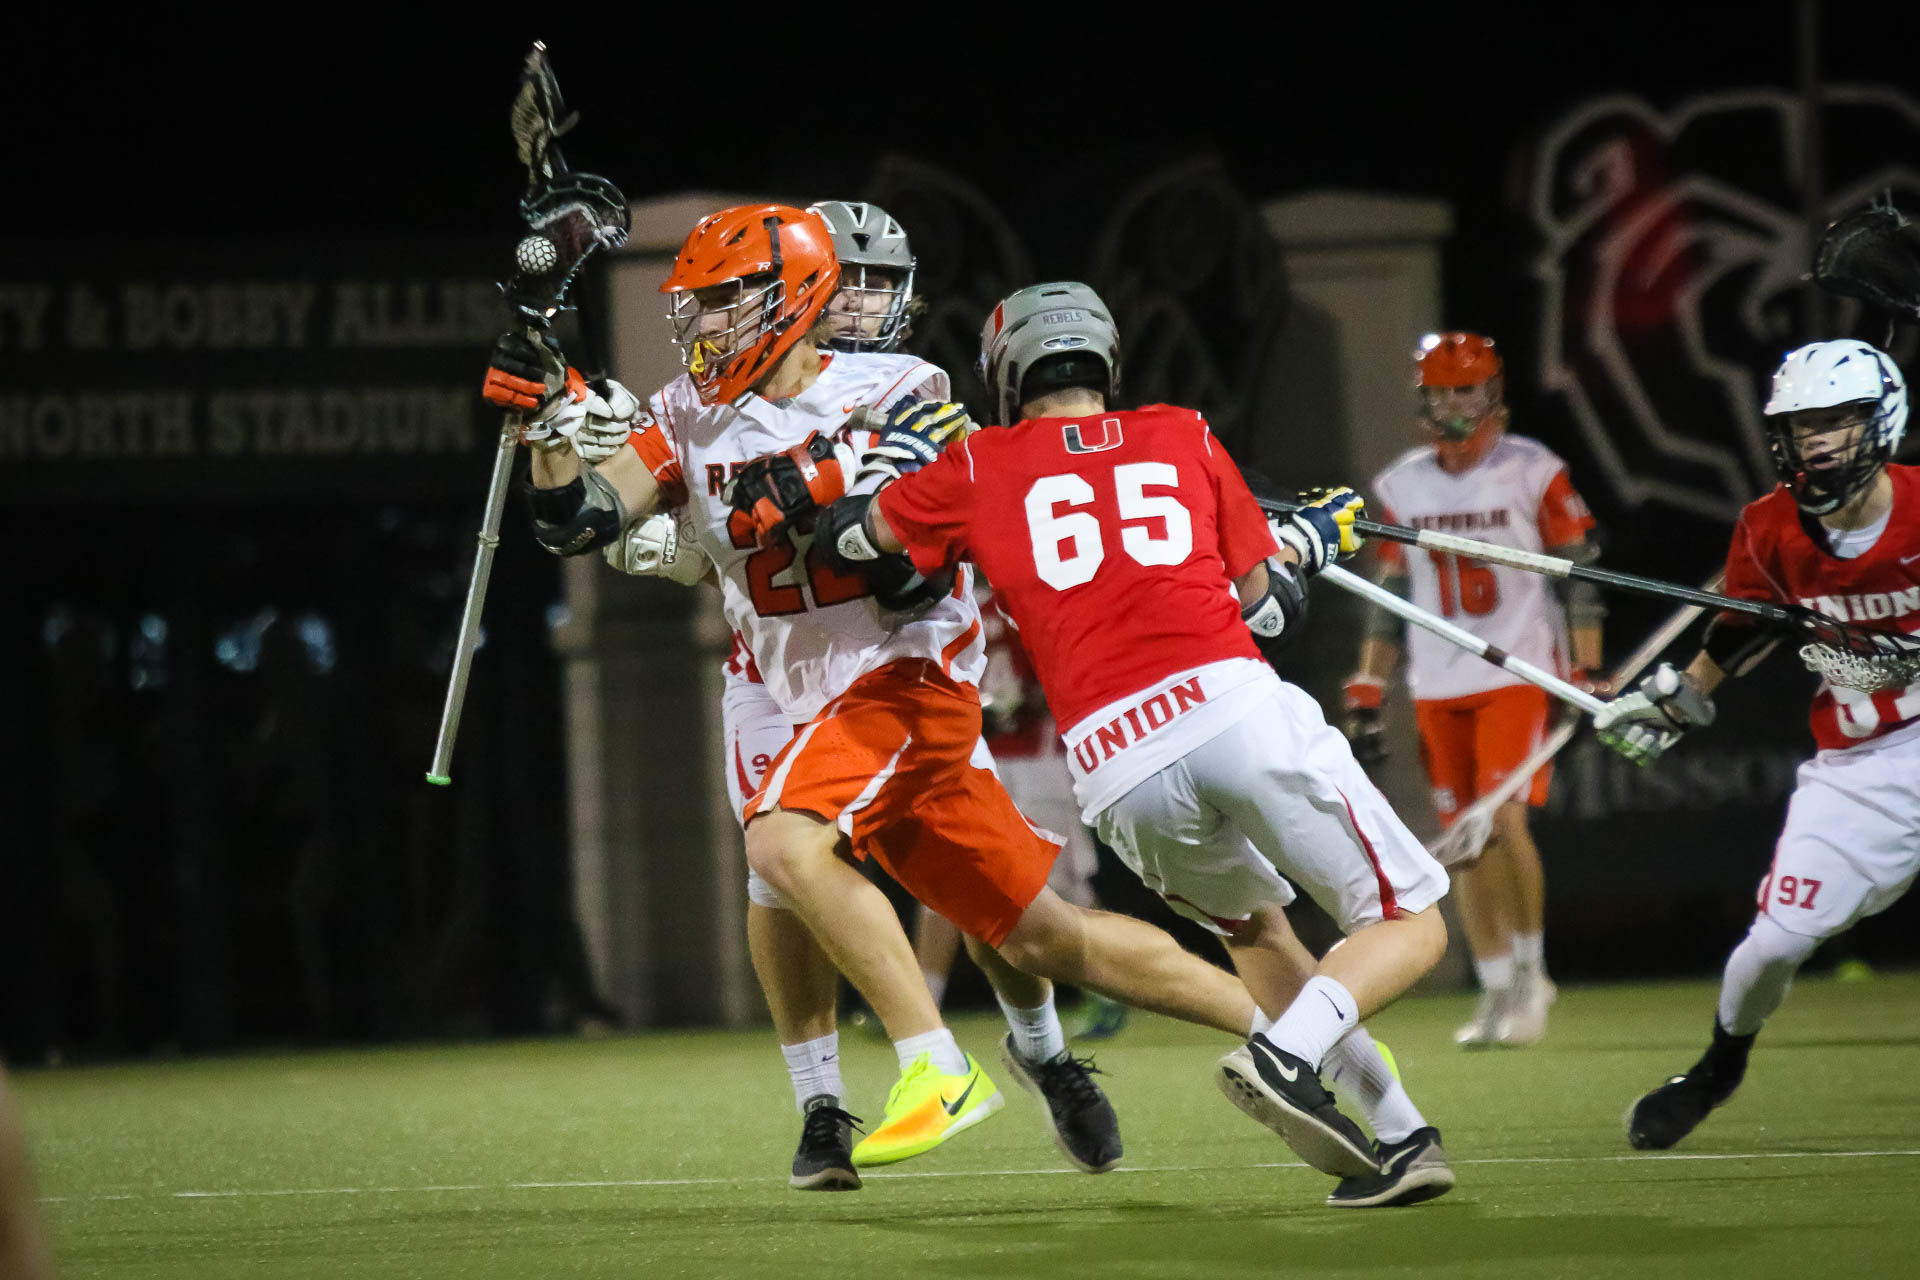 Photos: Lacrosse Vs Union